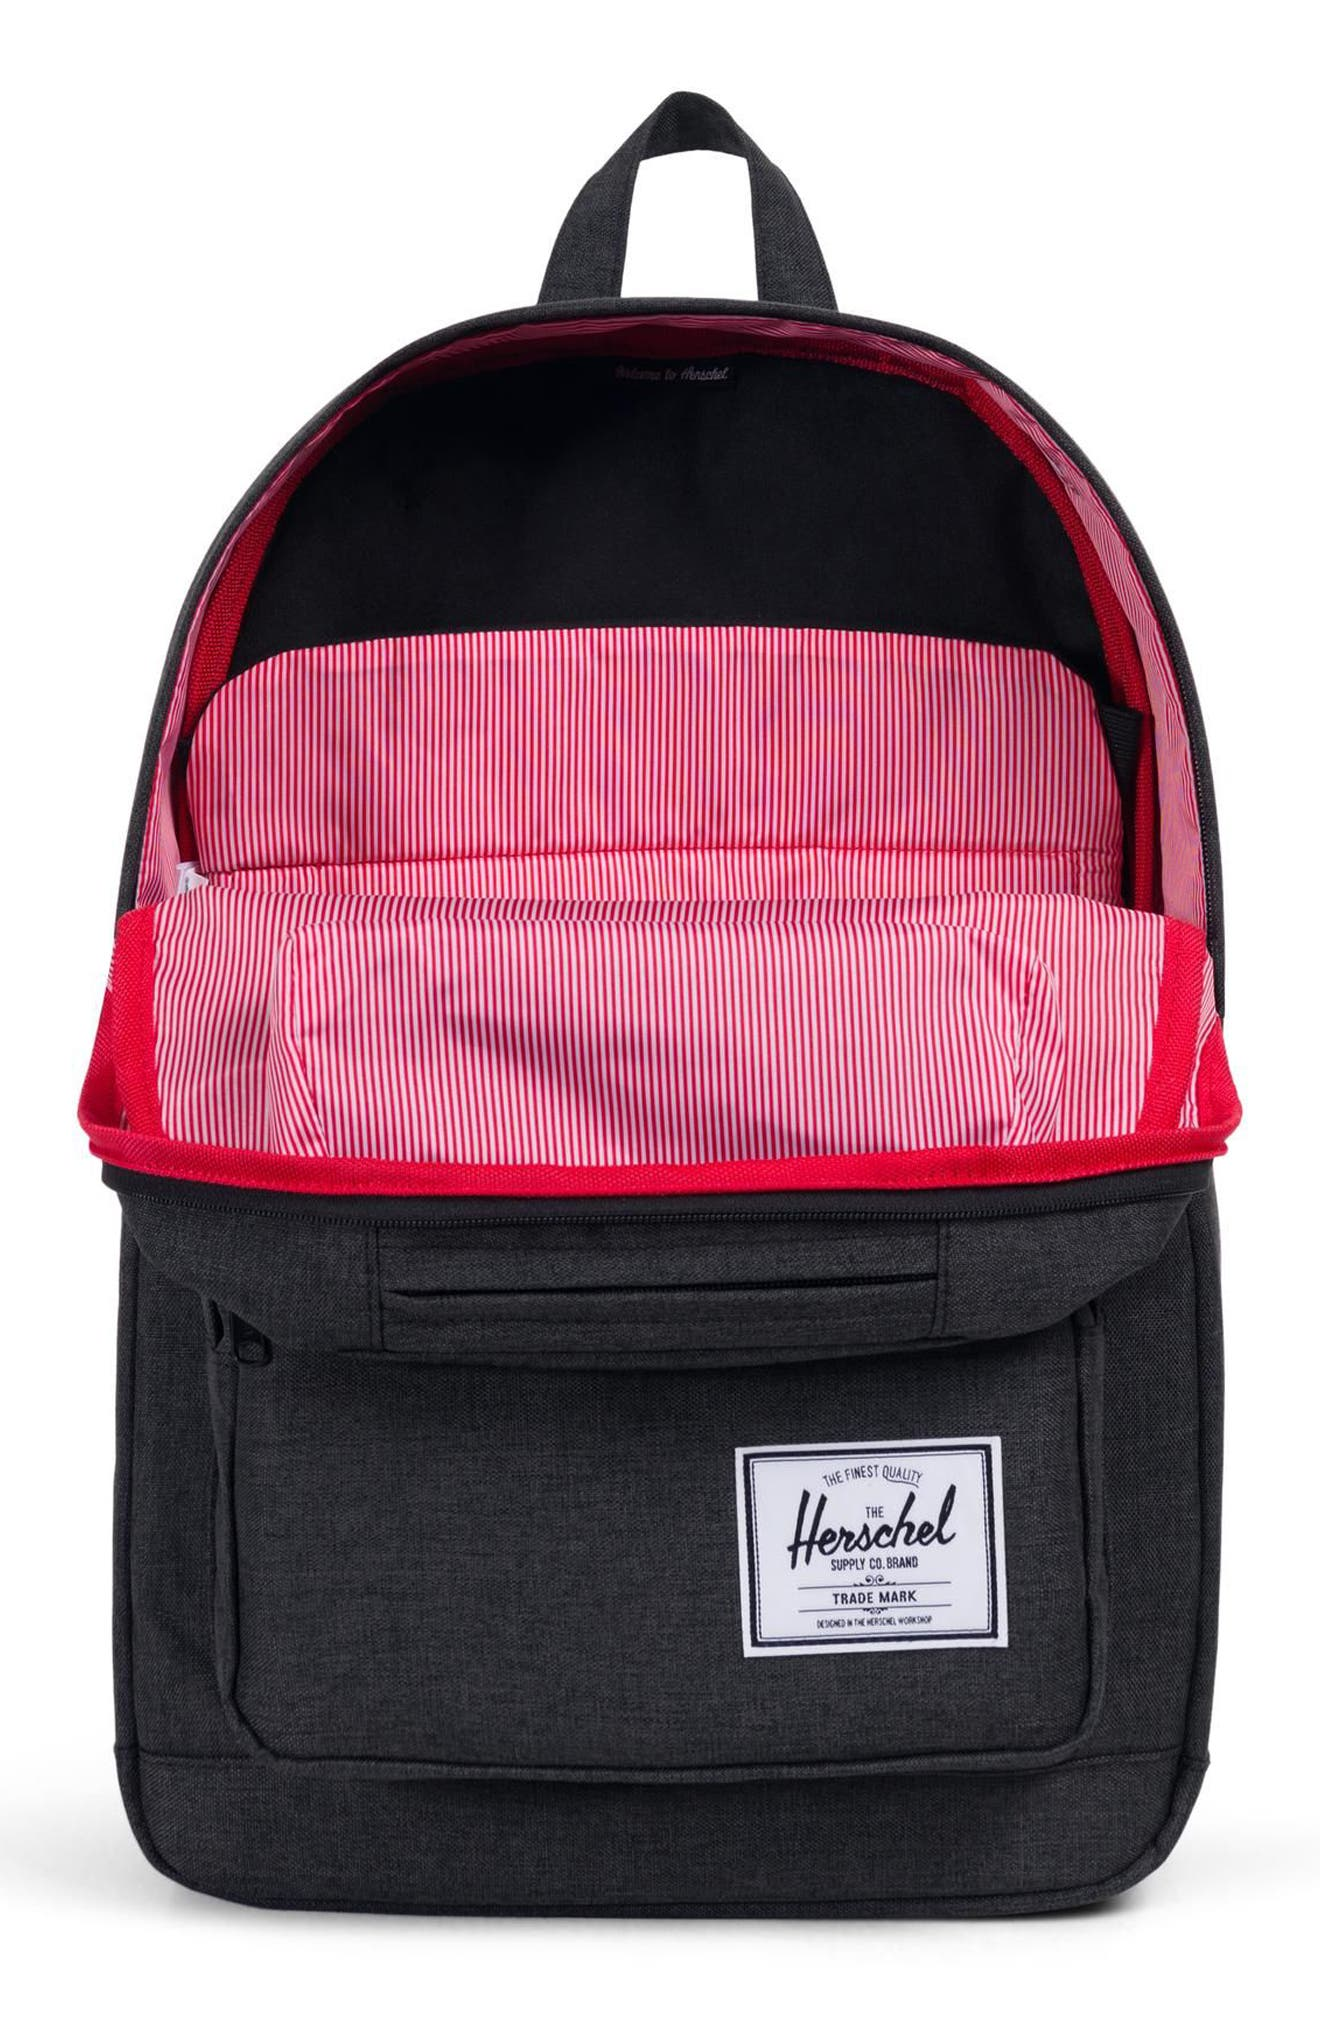 'Pop Quiz' Backpack,                             Alternate thumbnail 3, color,                             BLACK CROSSHATCH/ BLACK RUBBER